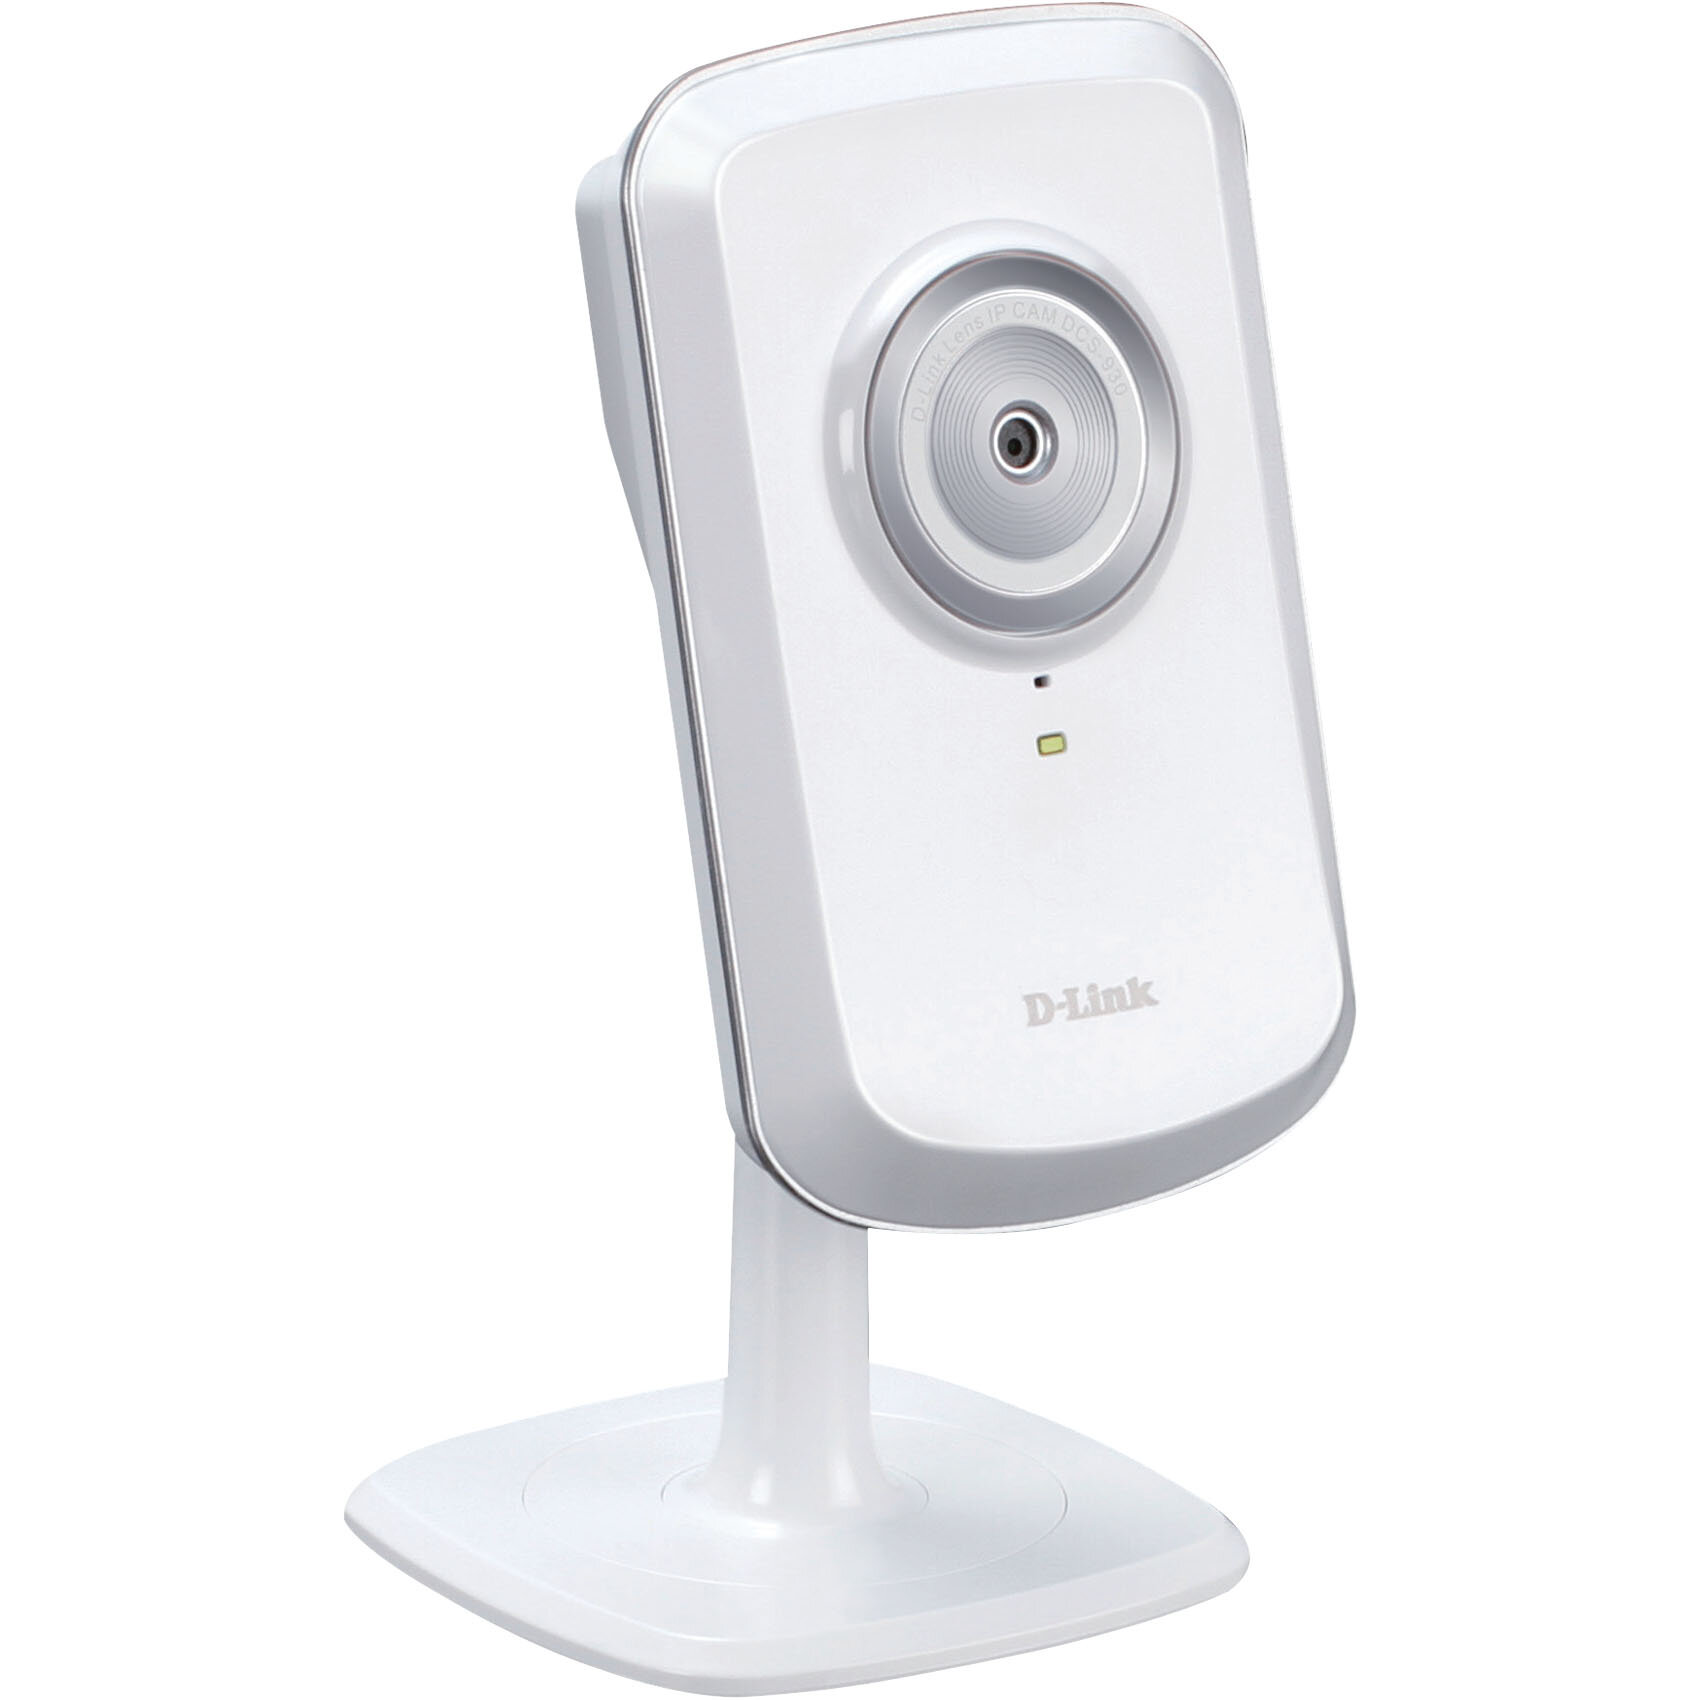 Camera box D-link DCS-930L - IP